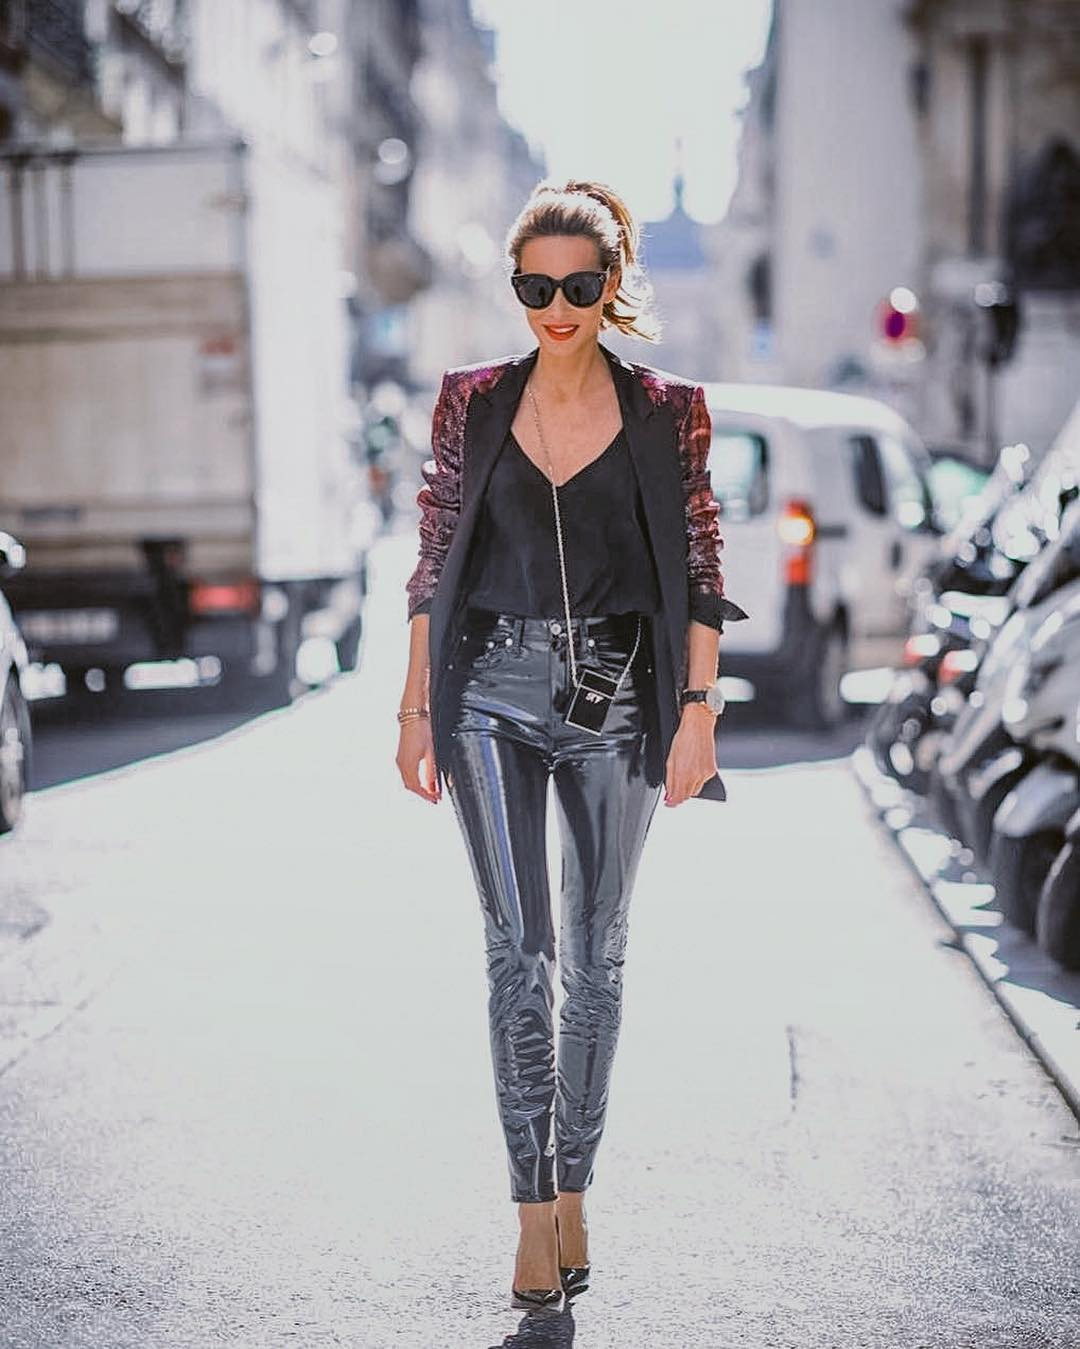 Velour Blazer And Patent Leather Pants Combo For Fall 2019